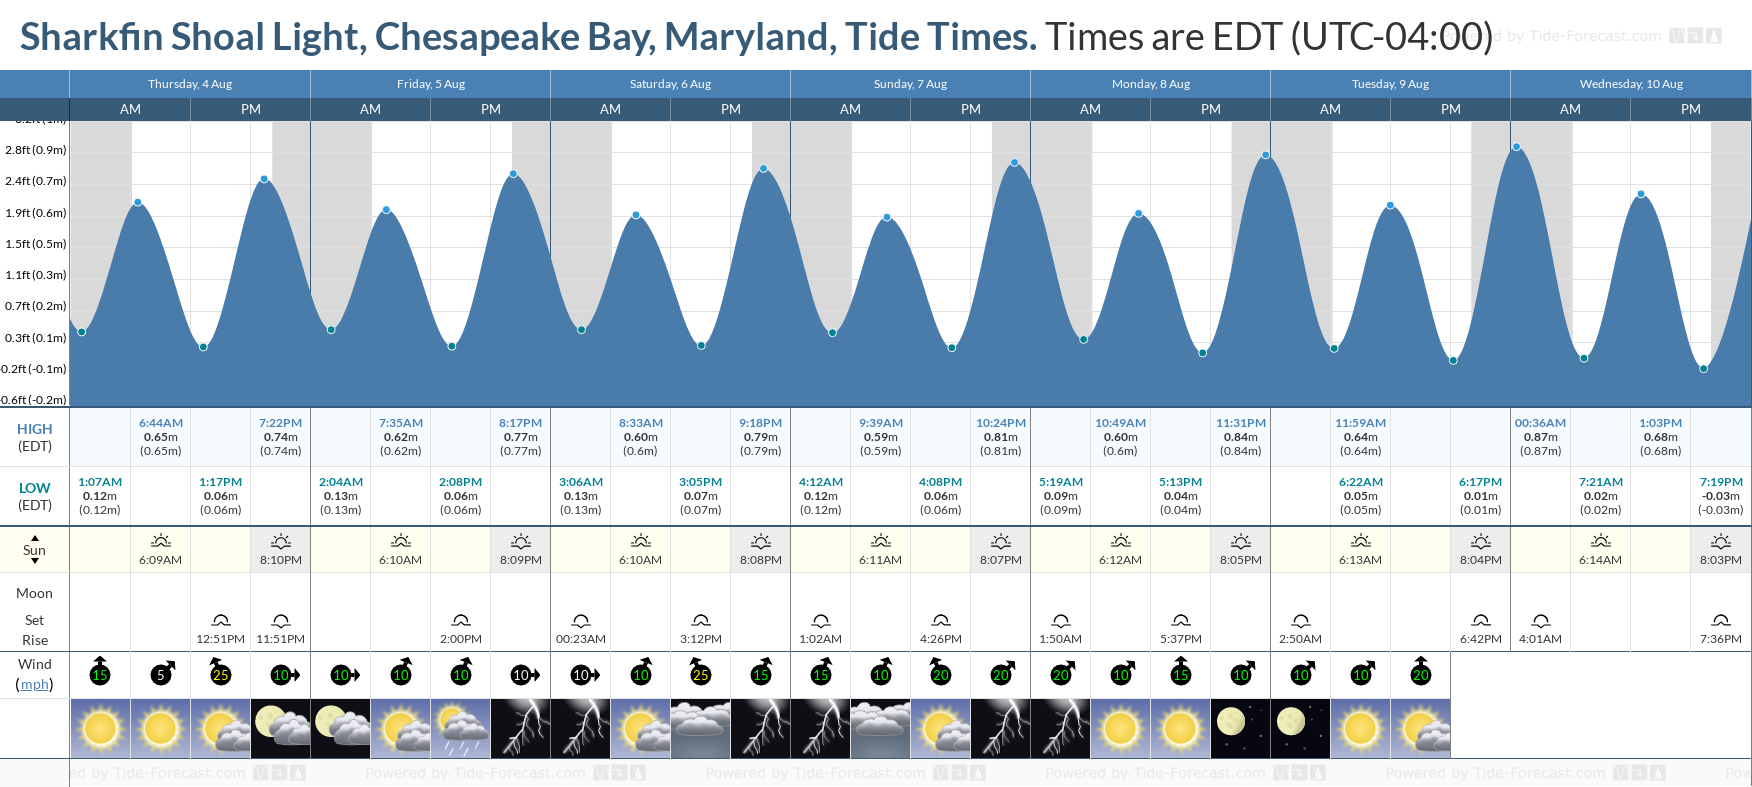 Sharkfin Shoal Light, Chesapeake Bay, Maryland Tide Chart including high and low tide tide times for the next 7 days